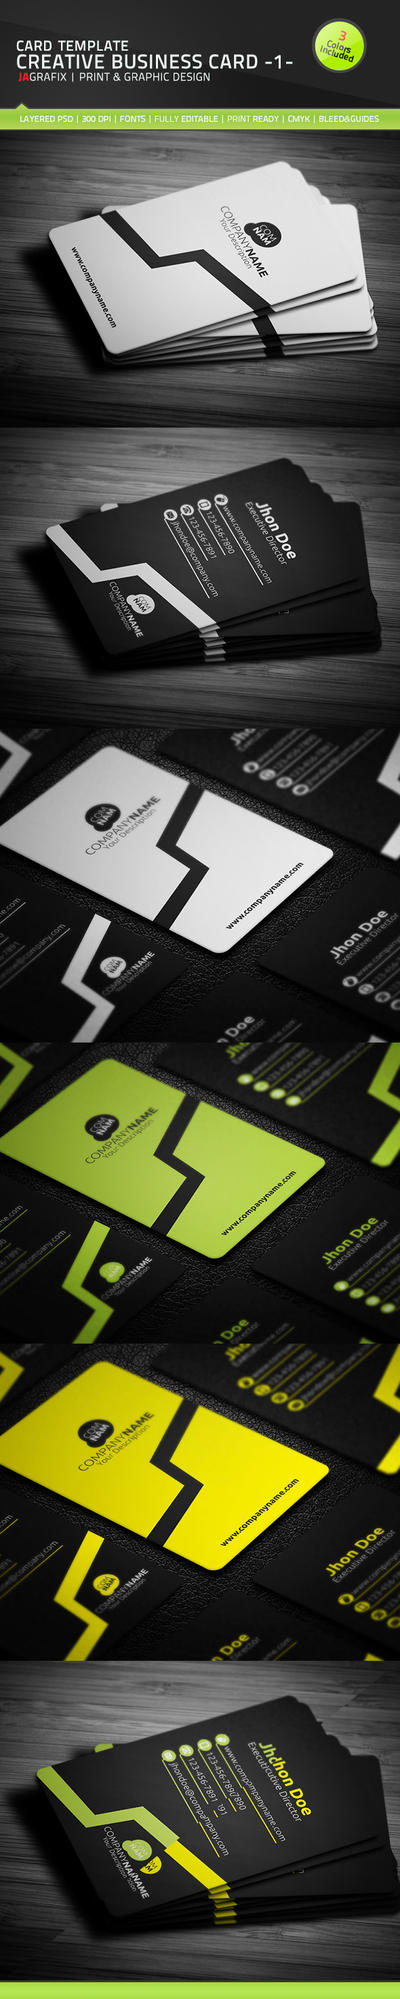 Creative Business Card - 1 - Template [PSD] by Ja-Ghraphics